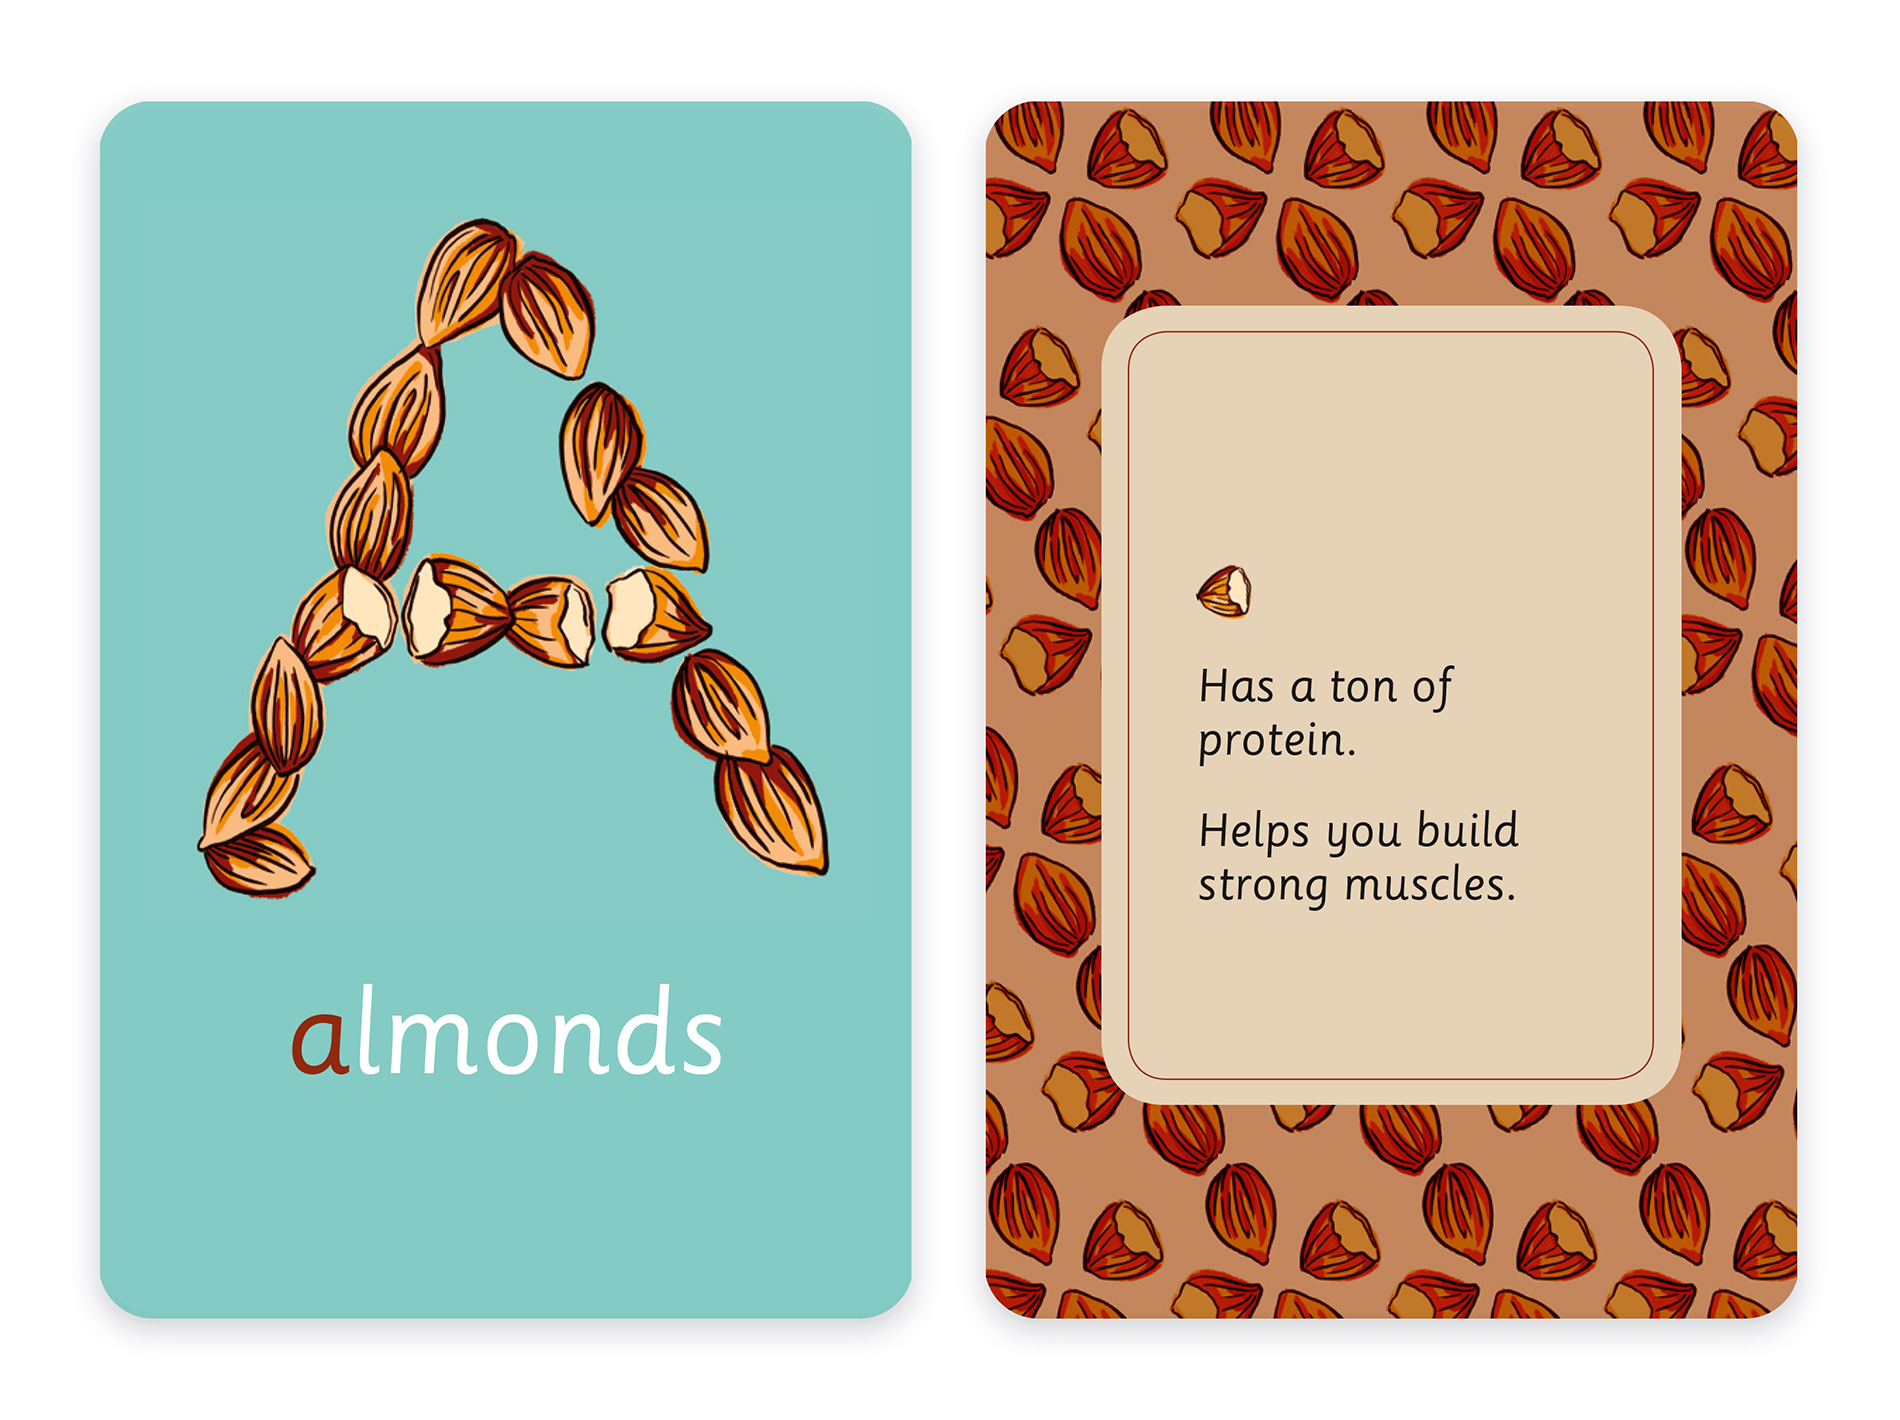 teaching-resource-flashcard-pattern-education-illustrations-almond-by-fiona-dunnett.jpg